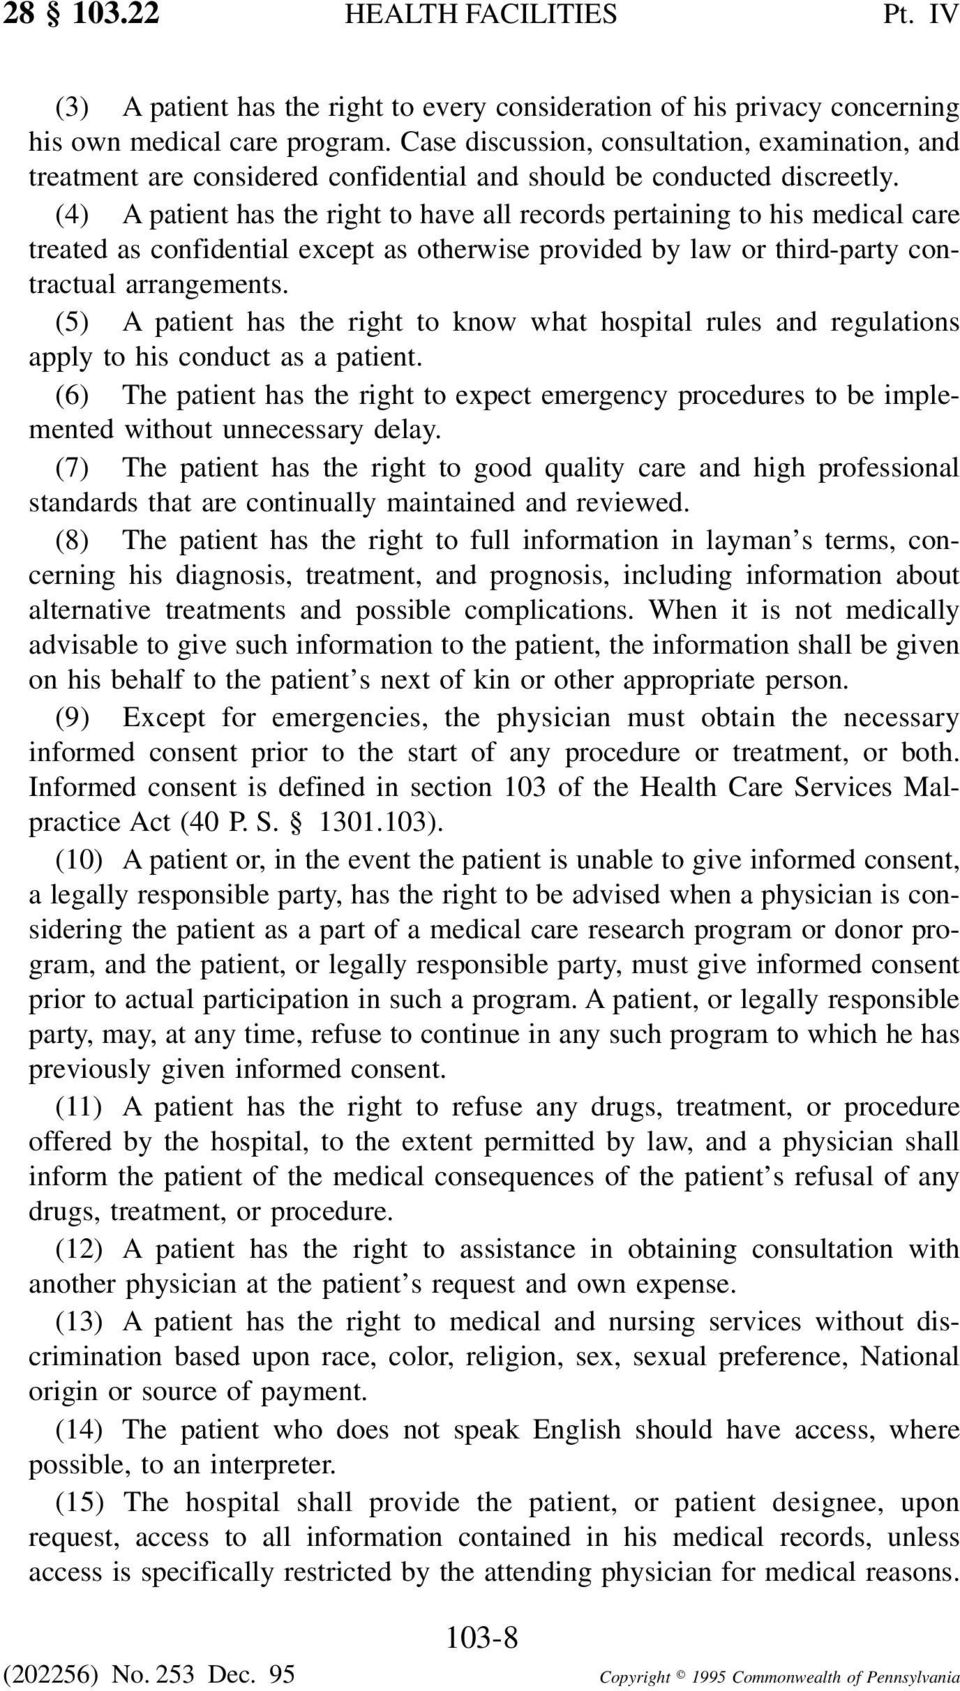 (4) A patient has the right to have all records pertaining to his medical care treated as confidential except as otherwise provided by law or third-party contractual arrangements.